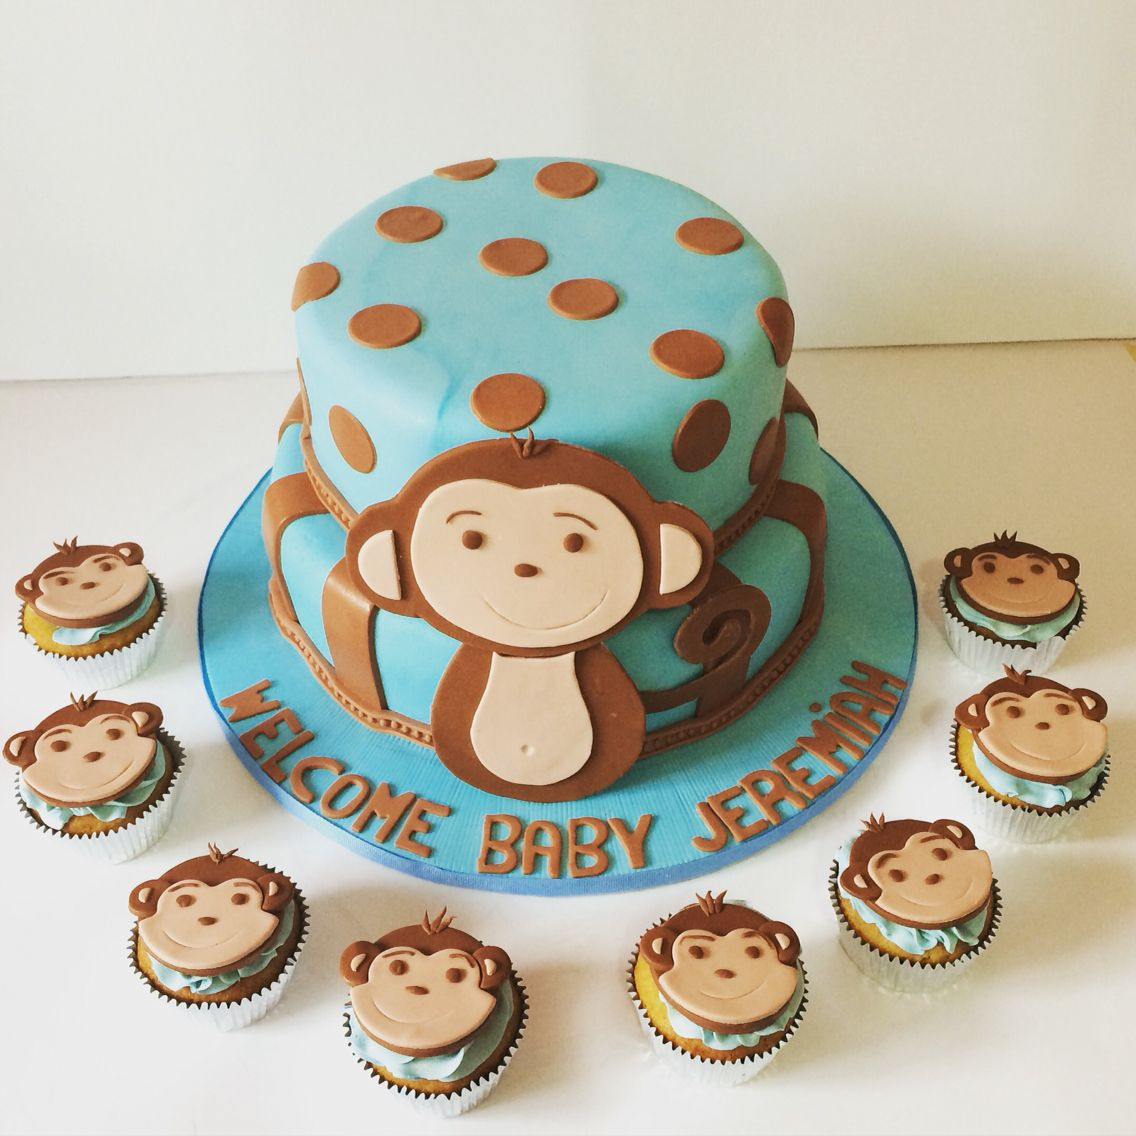 Baby shower cake Monkey cake for baby boy Birthday cake